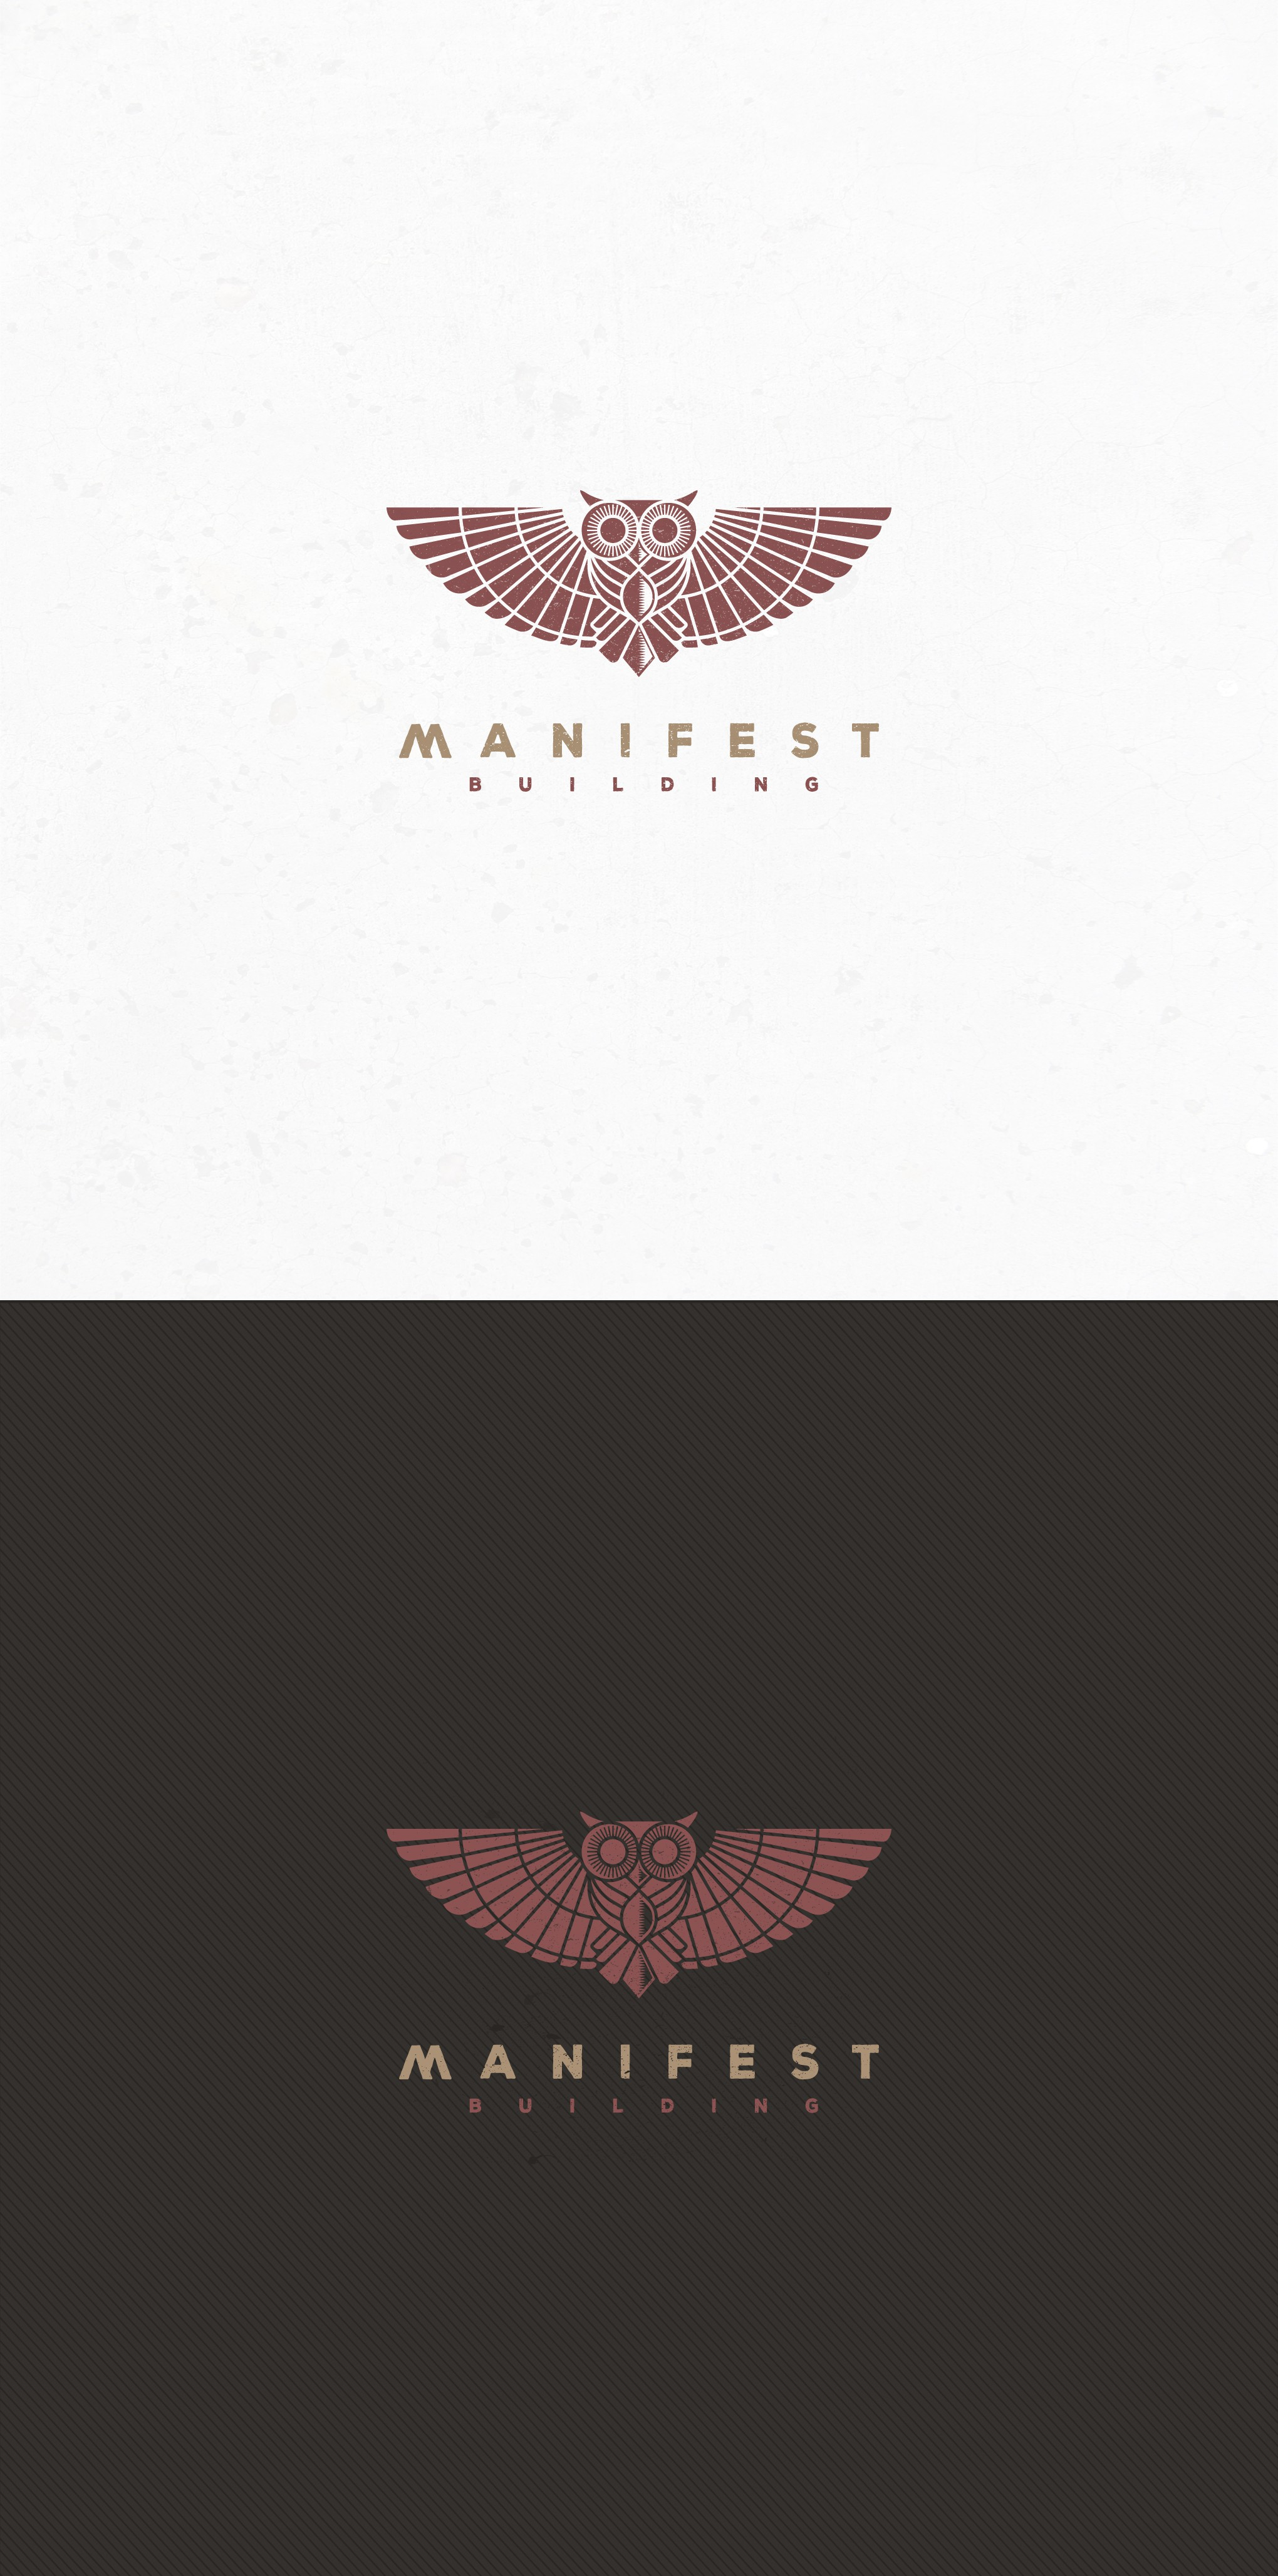 A conscious construction company [Manifest Building] needs an identity